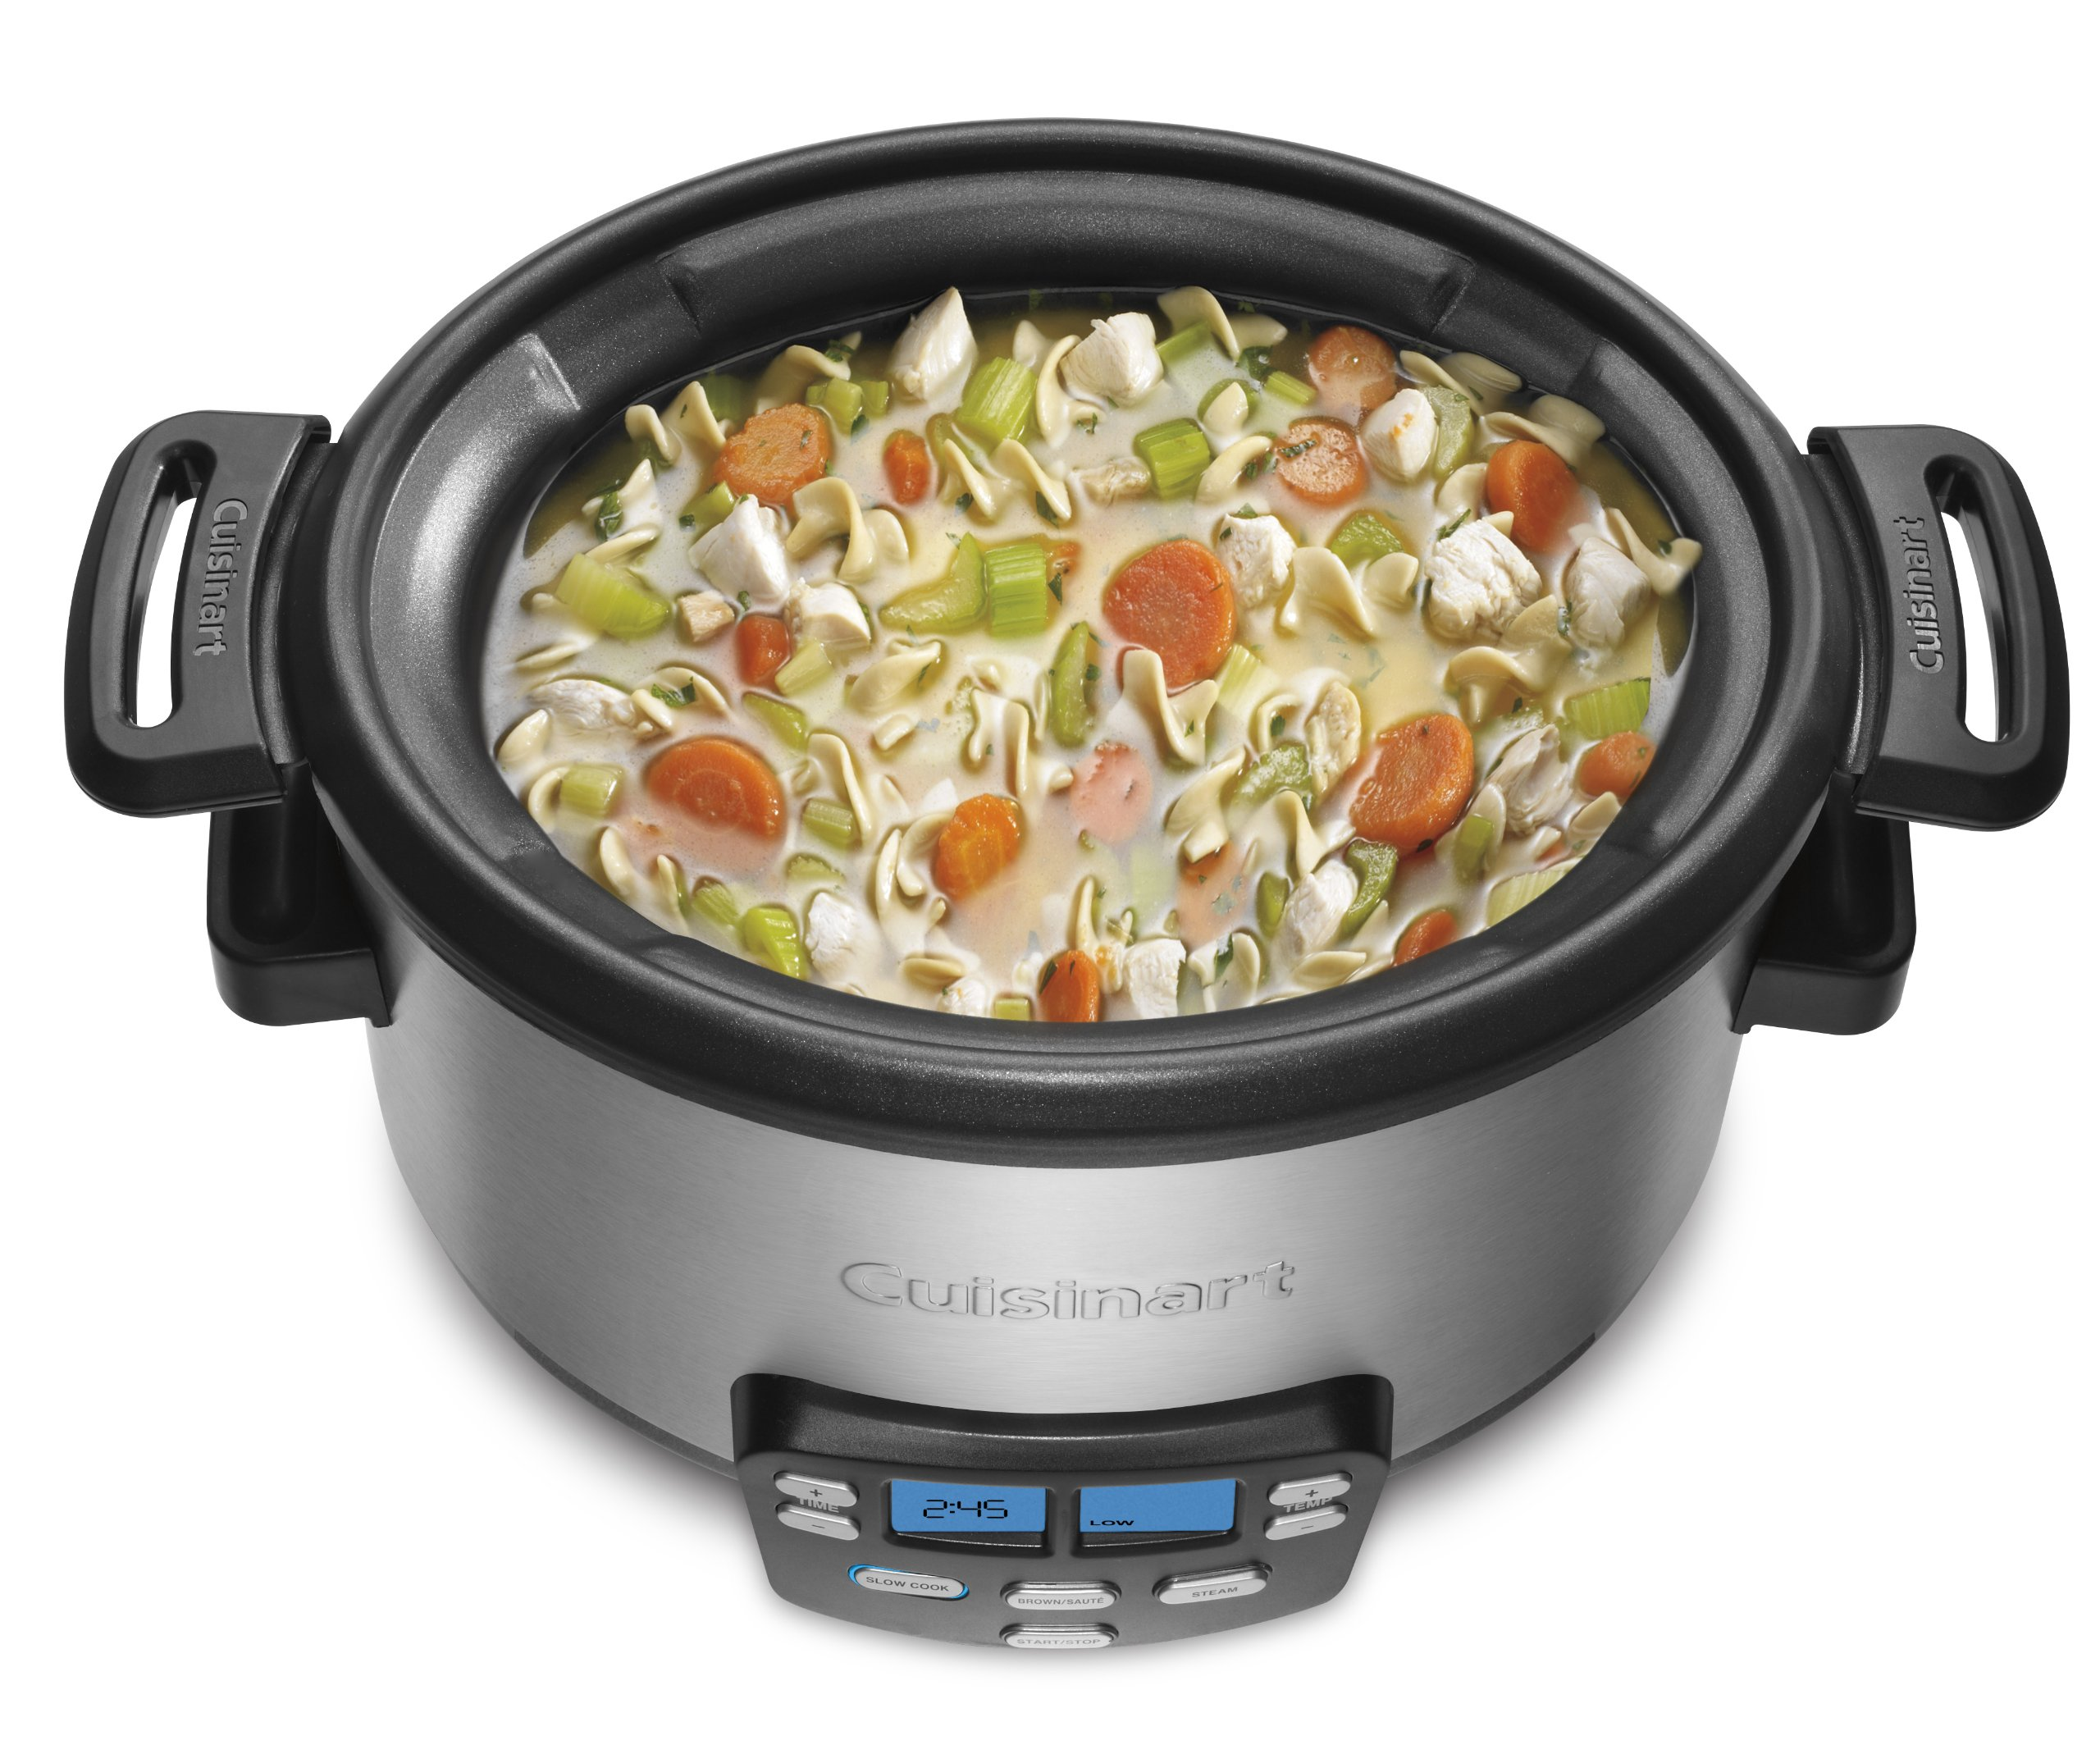 Cuisinart MSC-400 3-In-1 Cook Central 4-Quart Multi-Cooker: Slow Cooker, Brown/Saute, Steamer by Cuisinart (Image #7)